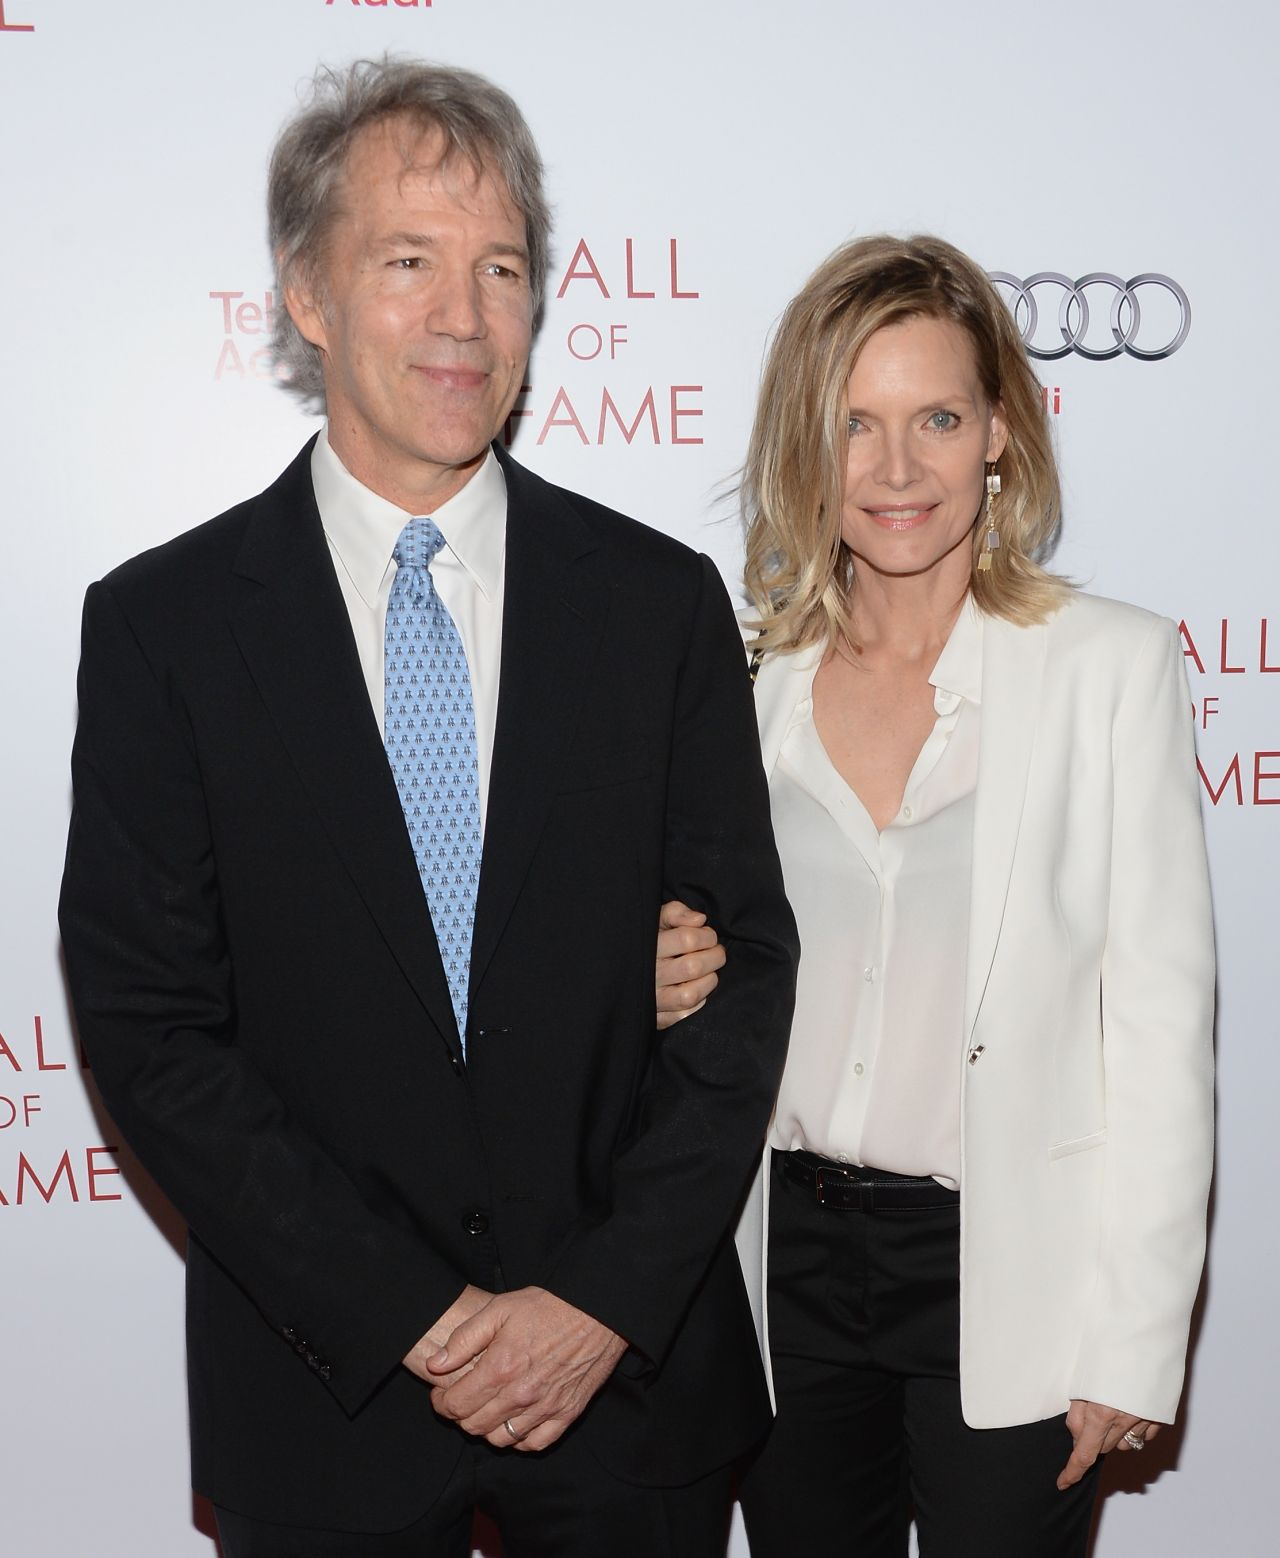 Michelle Pfeiffer and David E. Kelley - The Television Academy